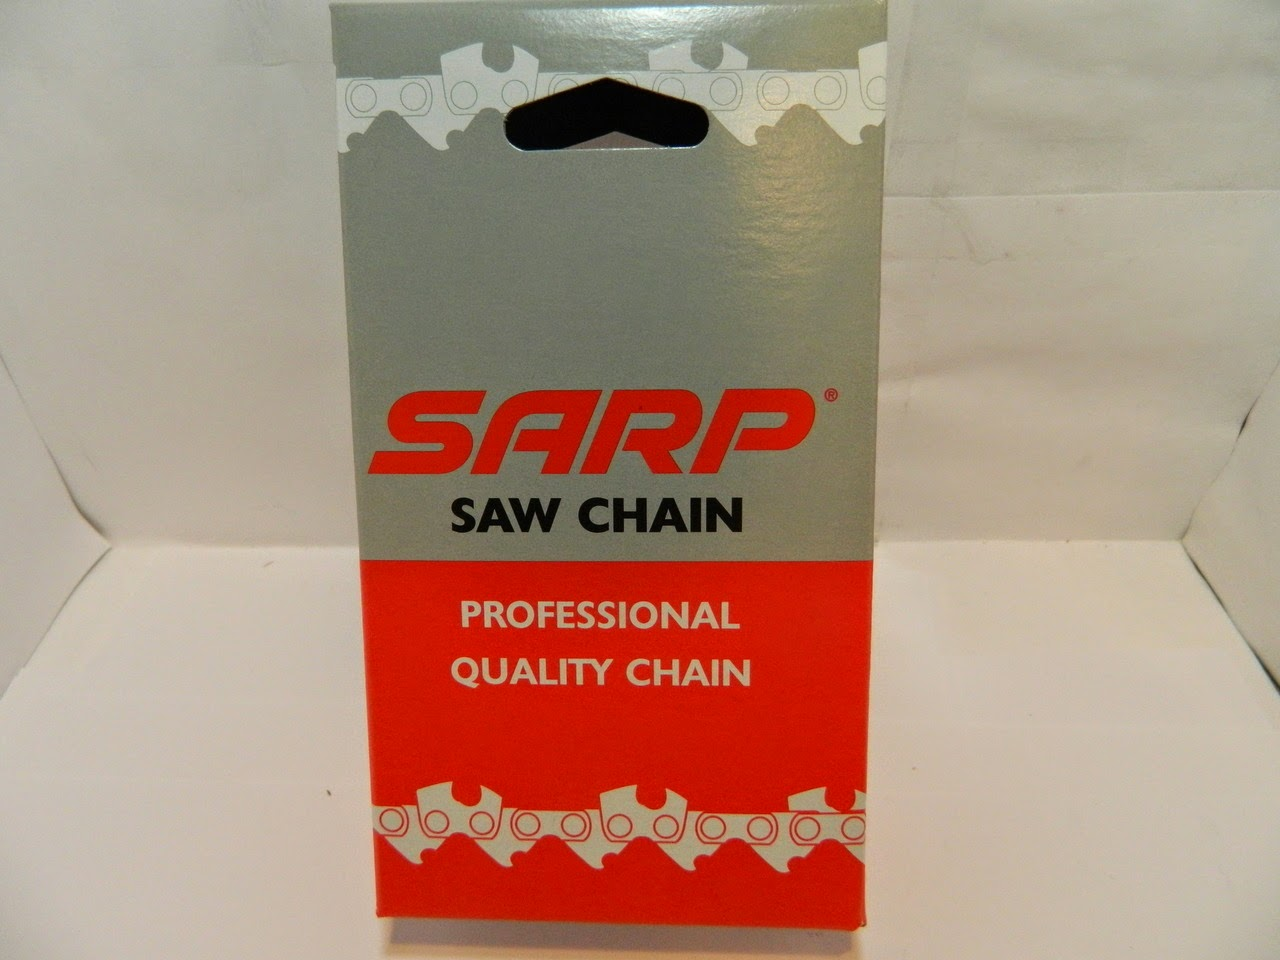 http://www.chainsawpartsonline.co.uk/genuine-sarp-chainsaw-chain-15-husqvarna-340-345-346-350-351-353-357-359-quality-chainsaw-chains-manufactured-by-blount-canada/